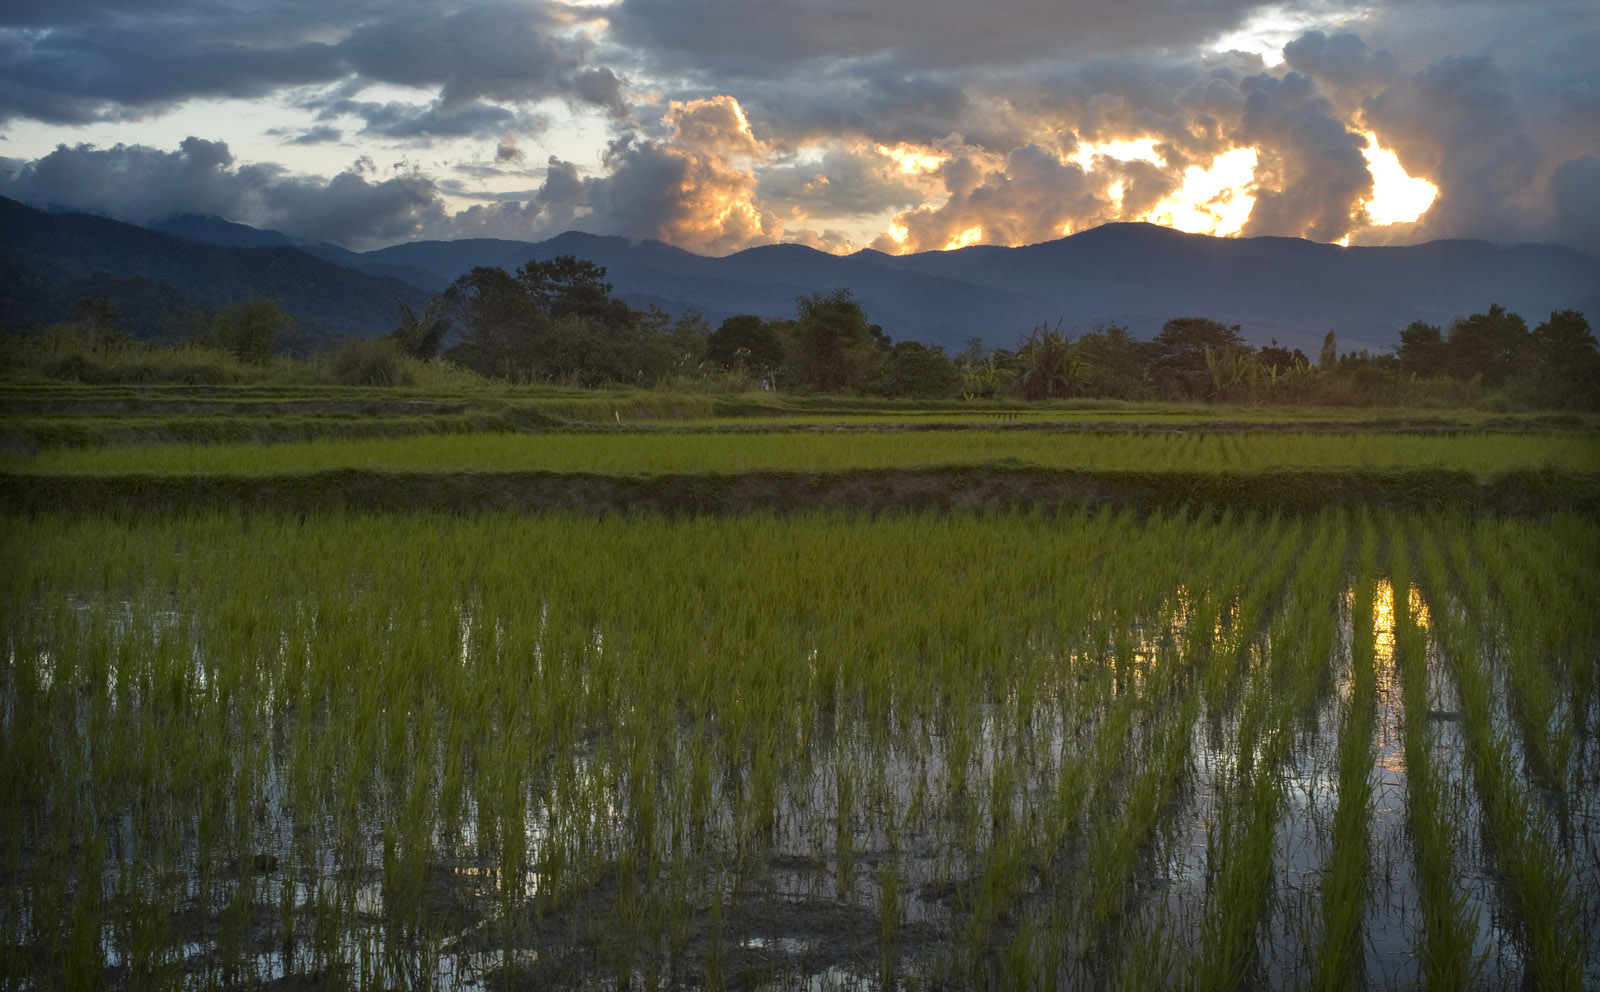 improved-rice-cultivation-hero-natural-climate-solutions-the-nature-conservancy